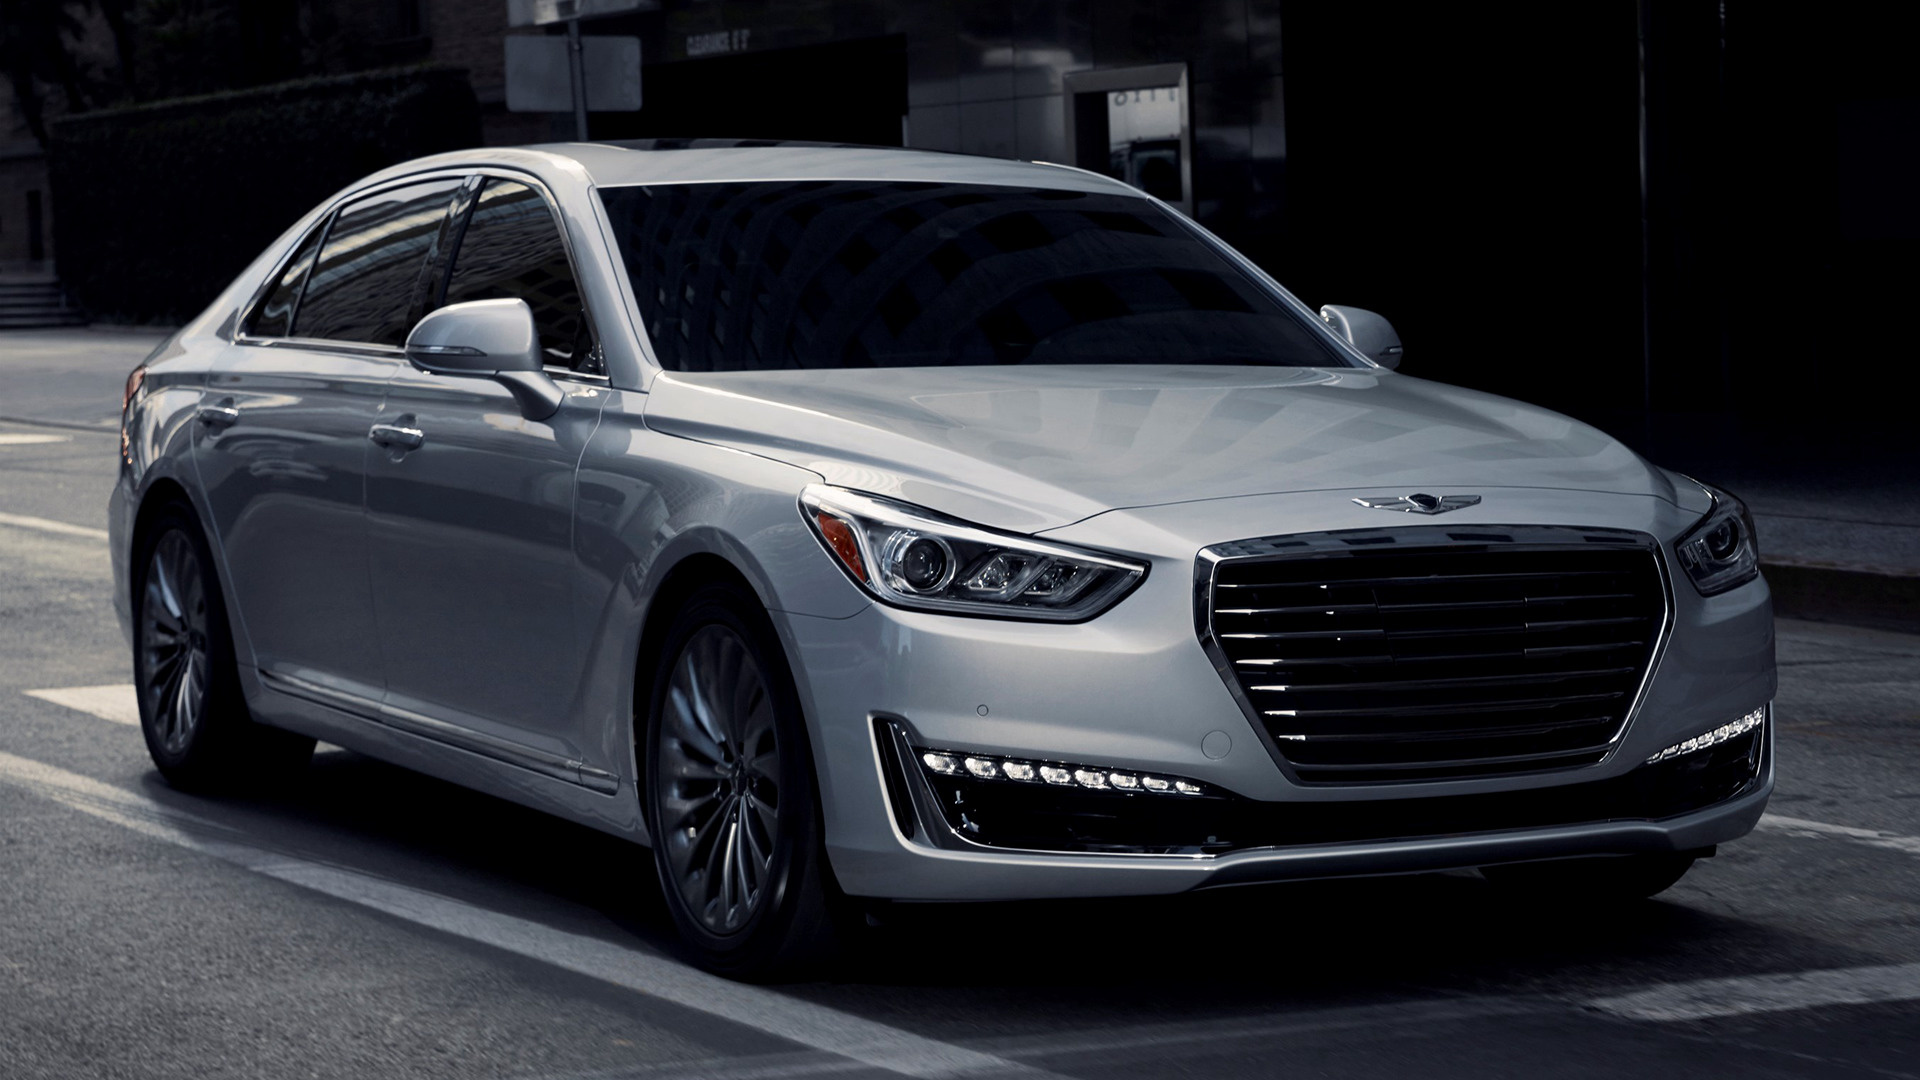 Mercedes Benz Logo >> 2017 Genesis G90 - Wallpapers and HD Images | Car Pixel